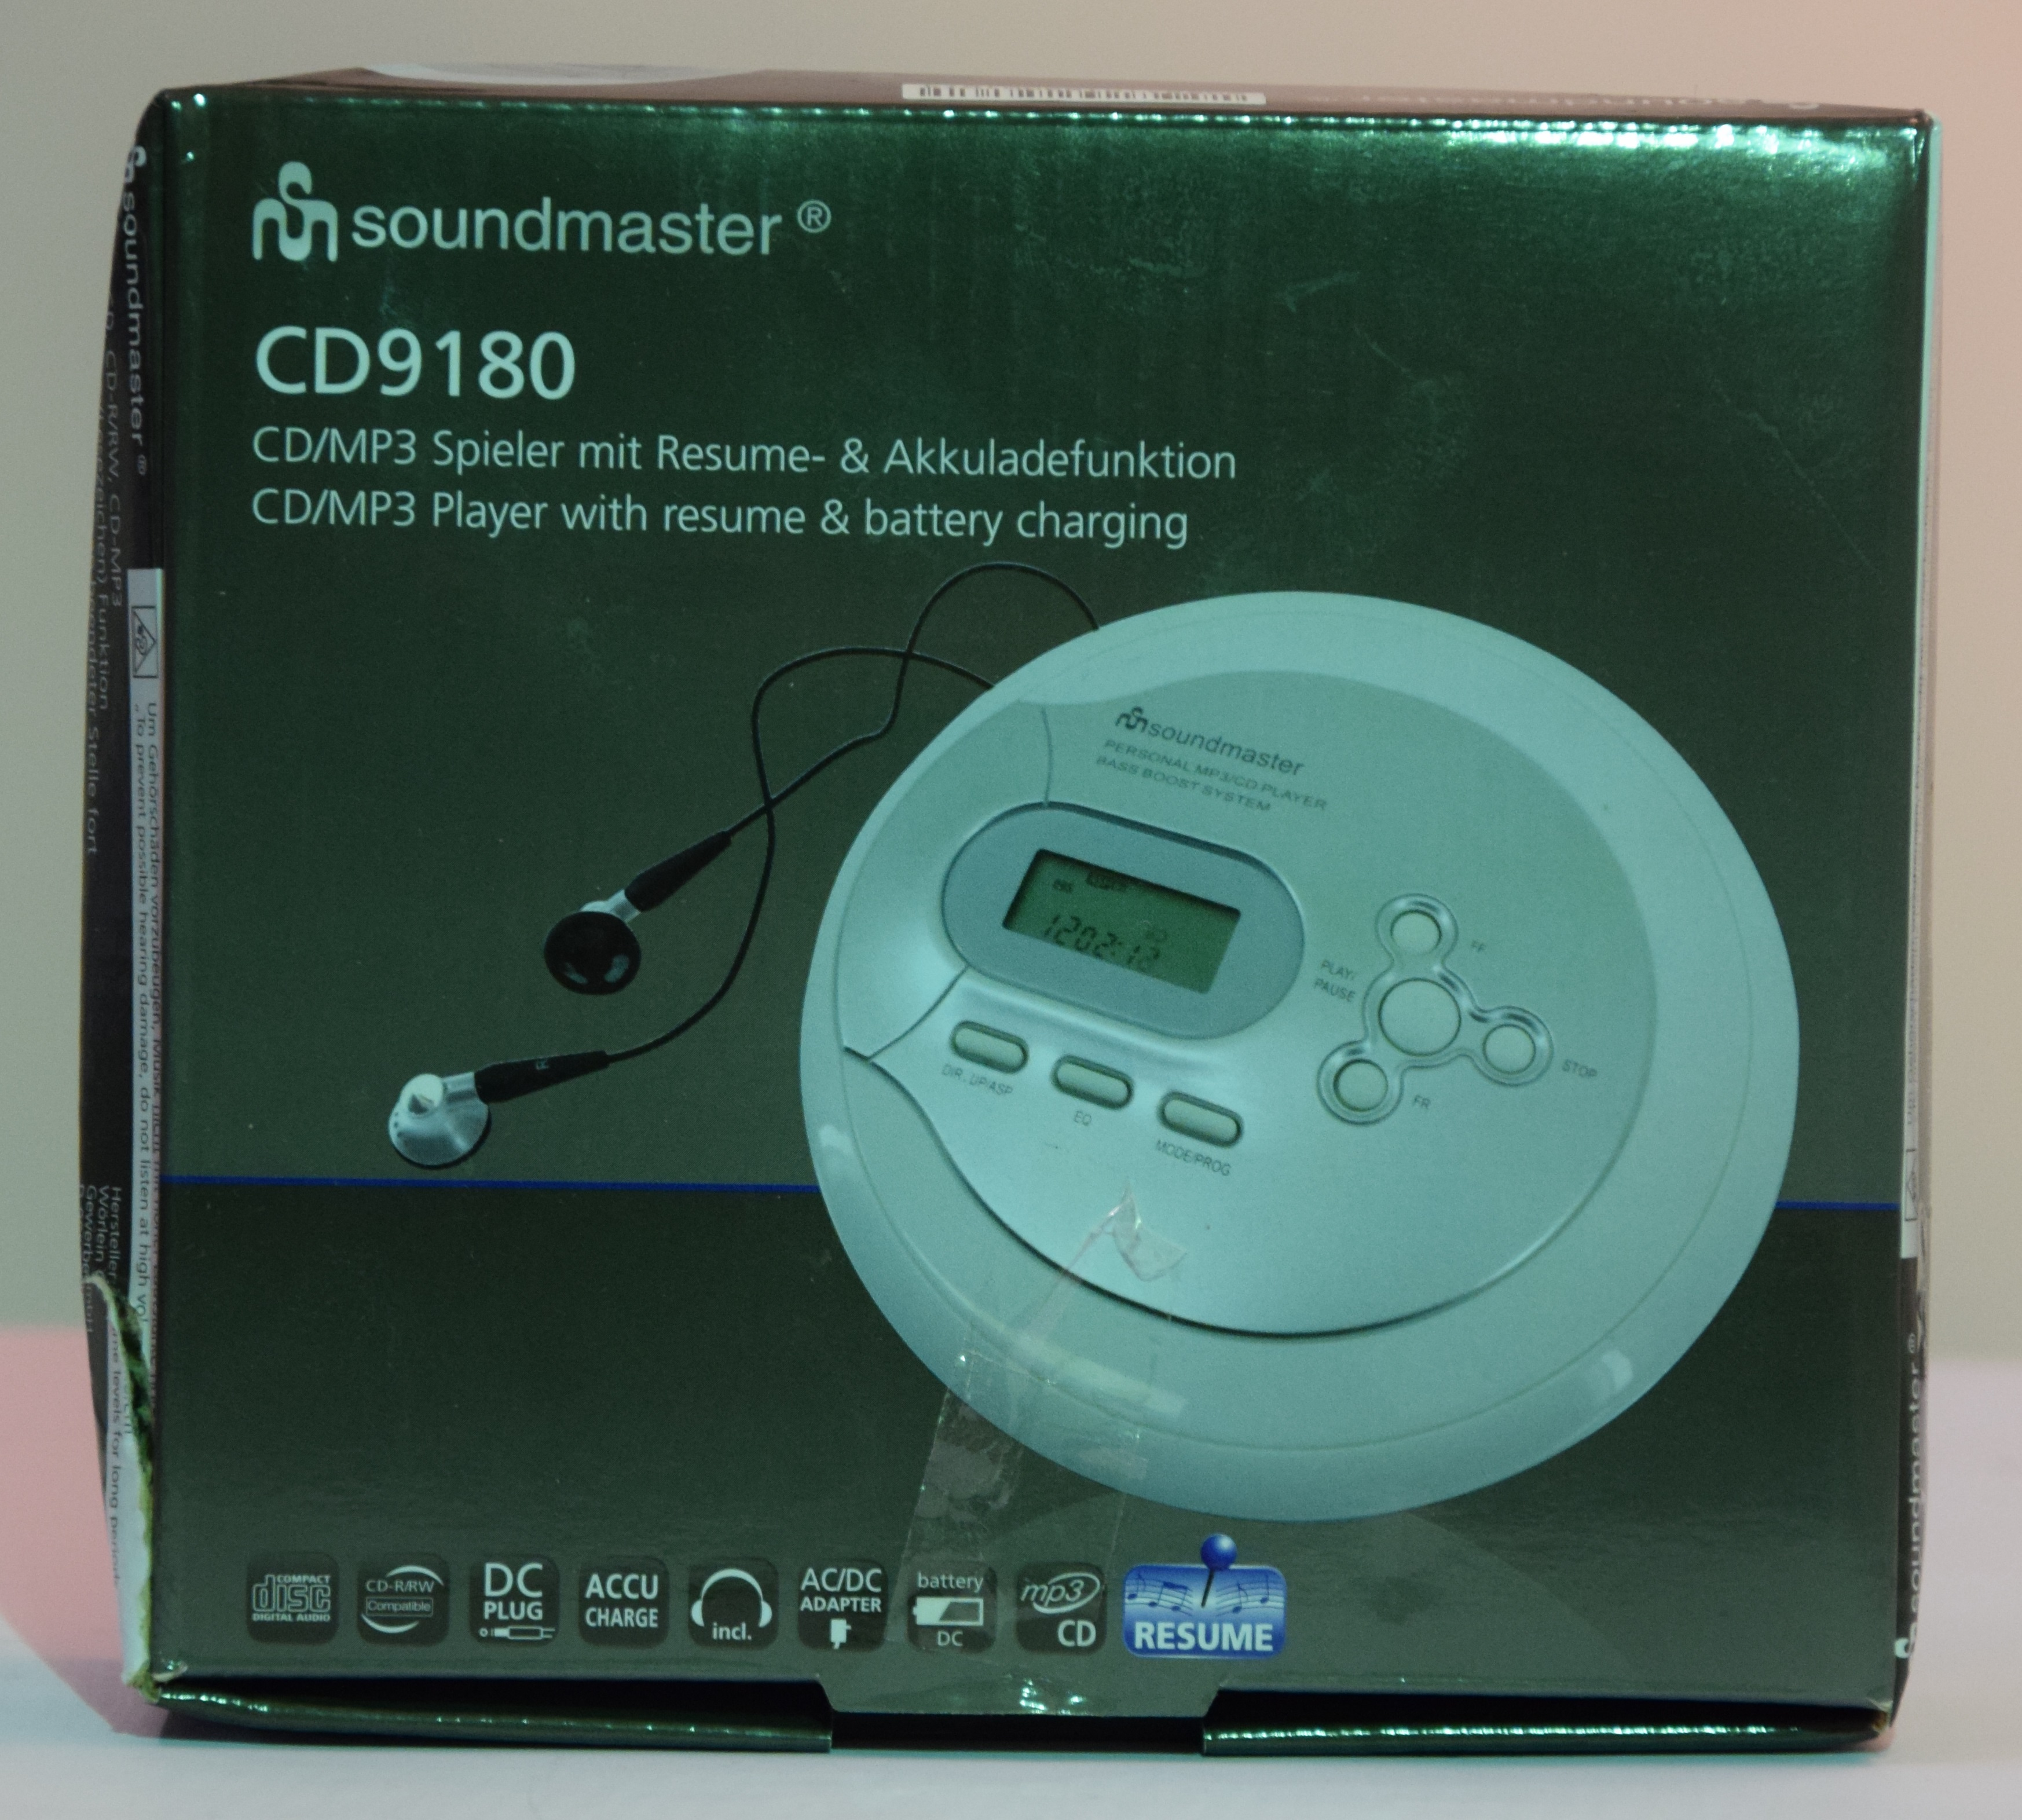 soundmaster cd9180 cd mp3 player with esp battery charger